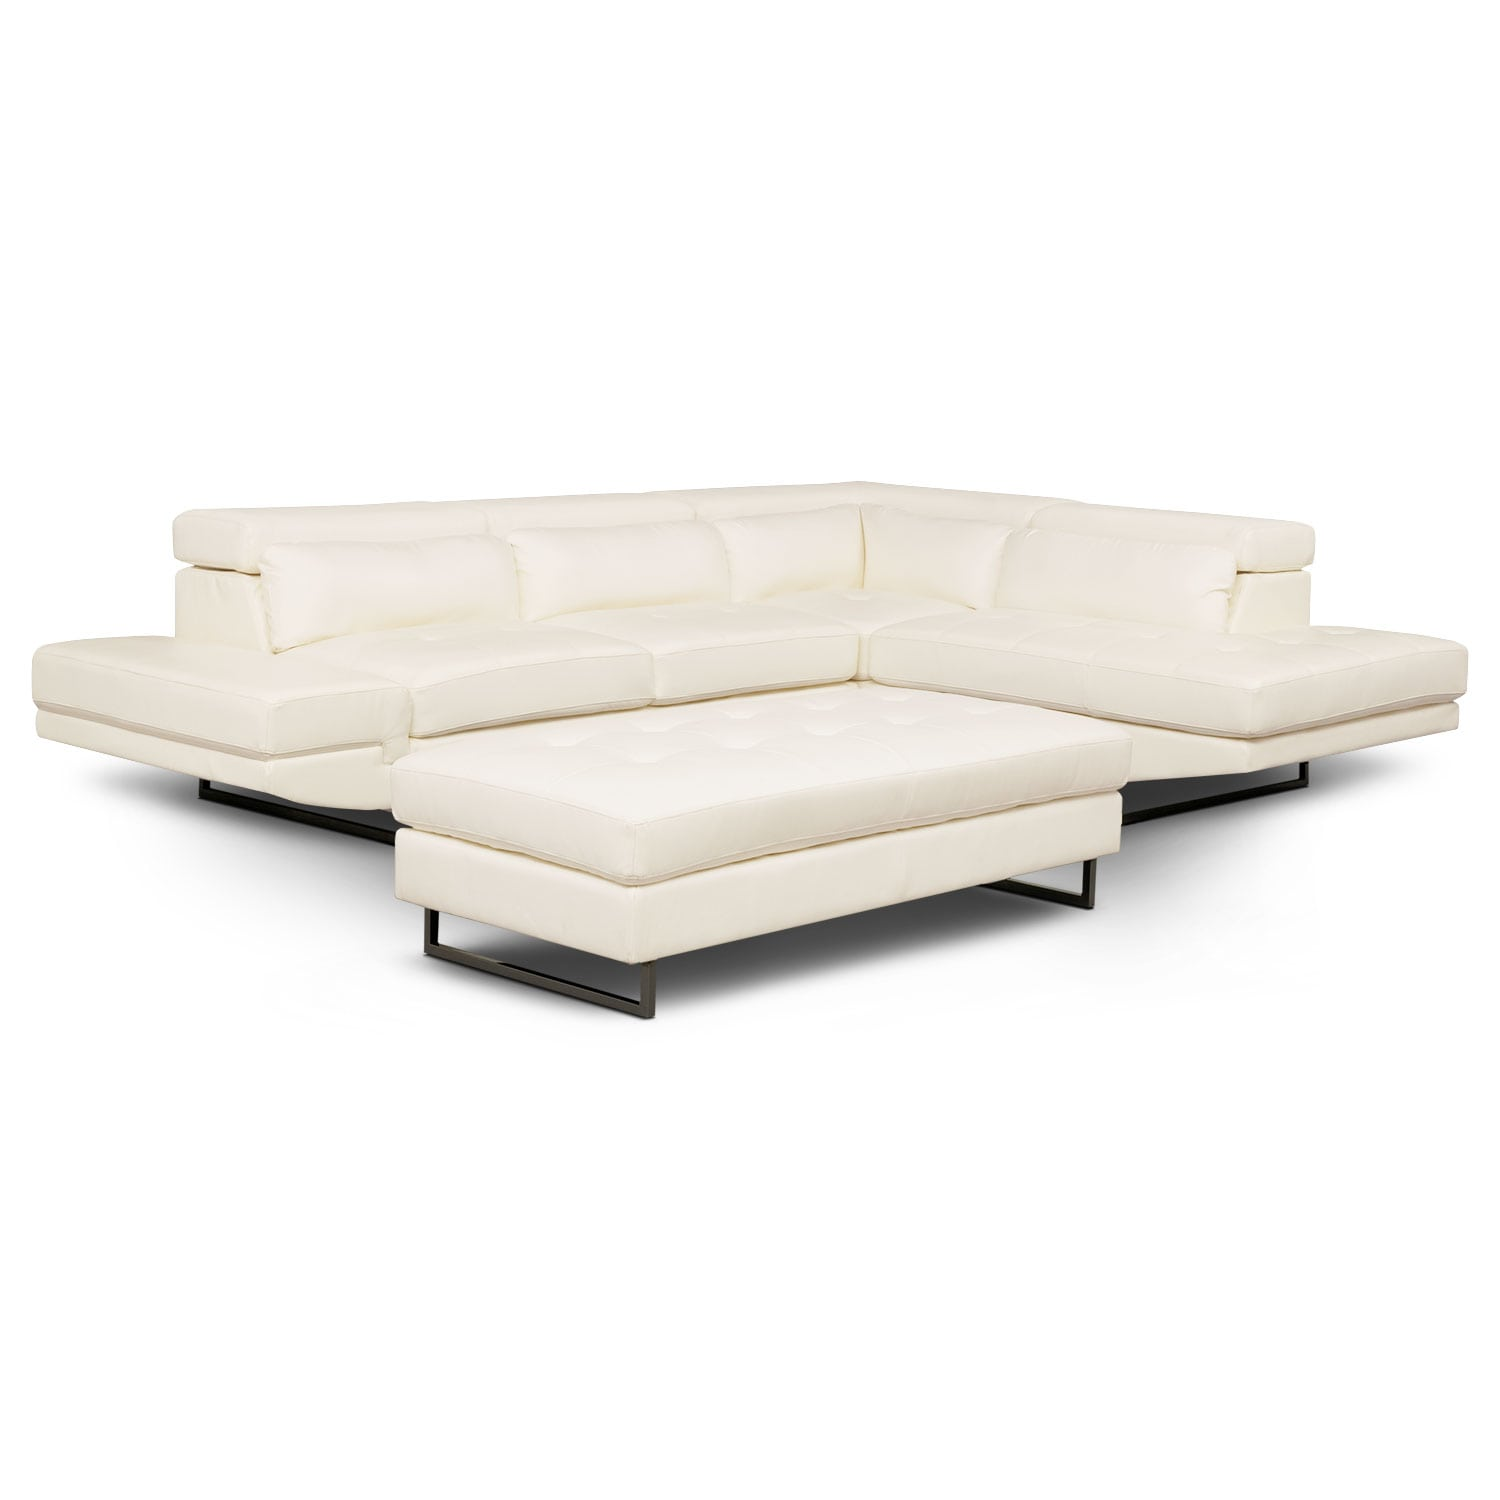 Living Room Furniture - Torino 2-Piece Sectional with Chaise and Ottoman